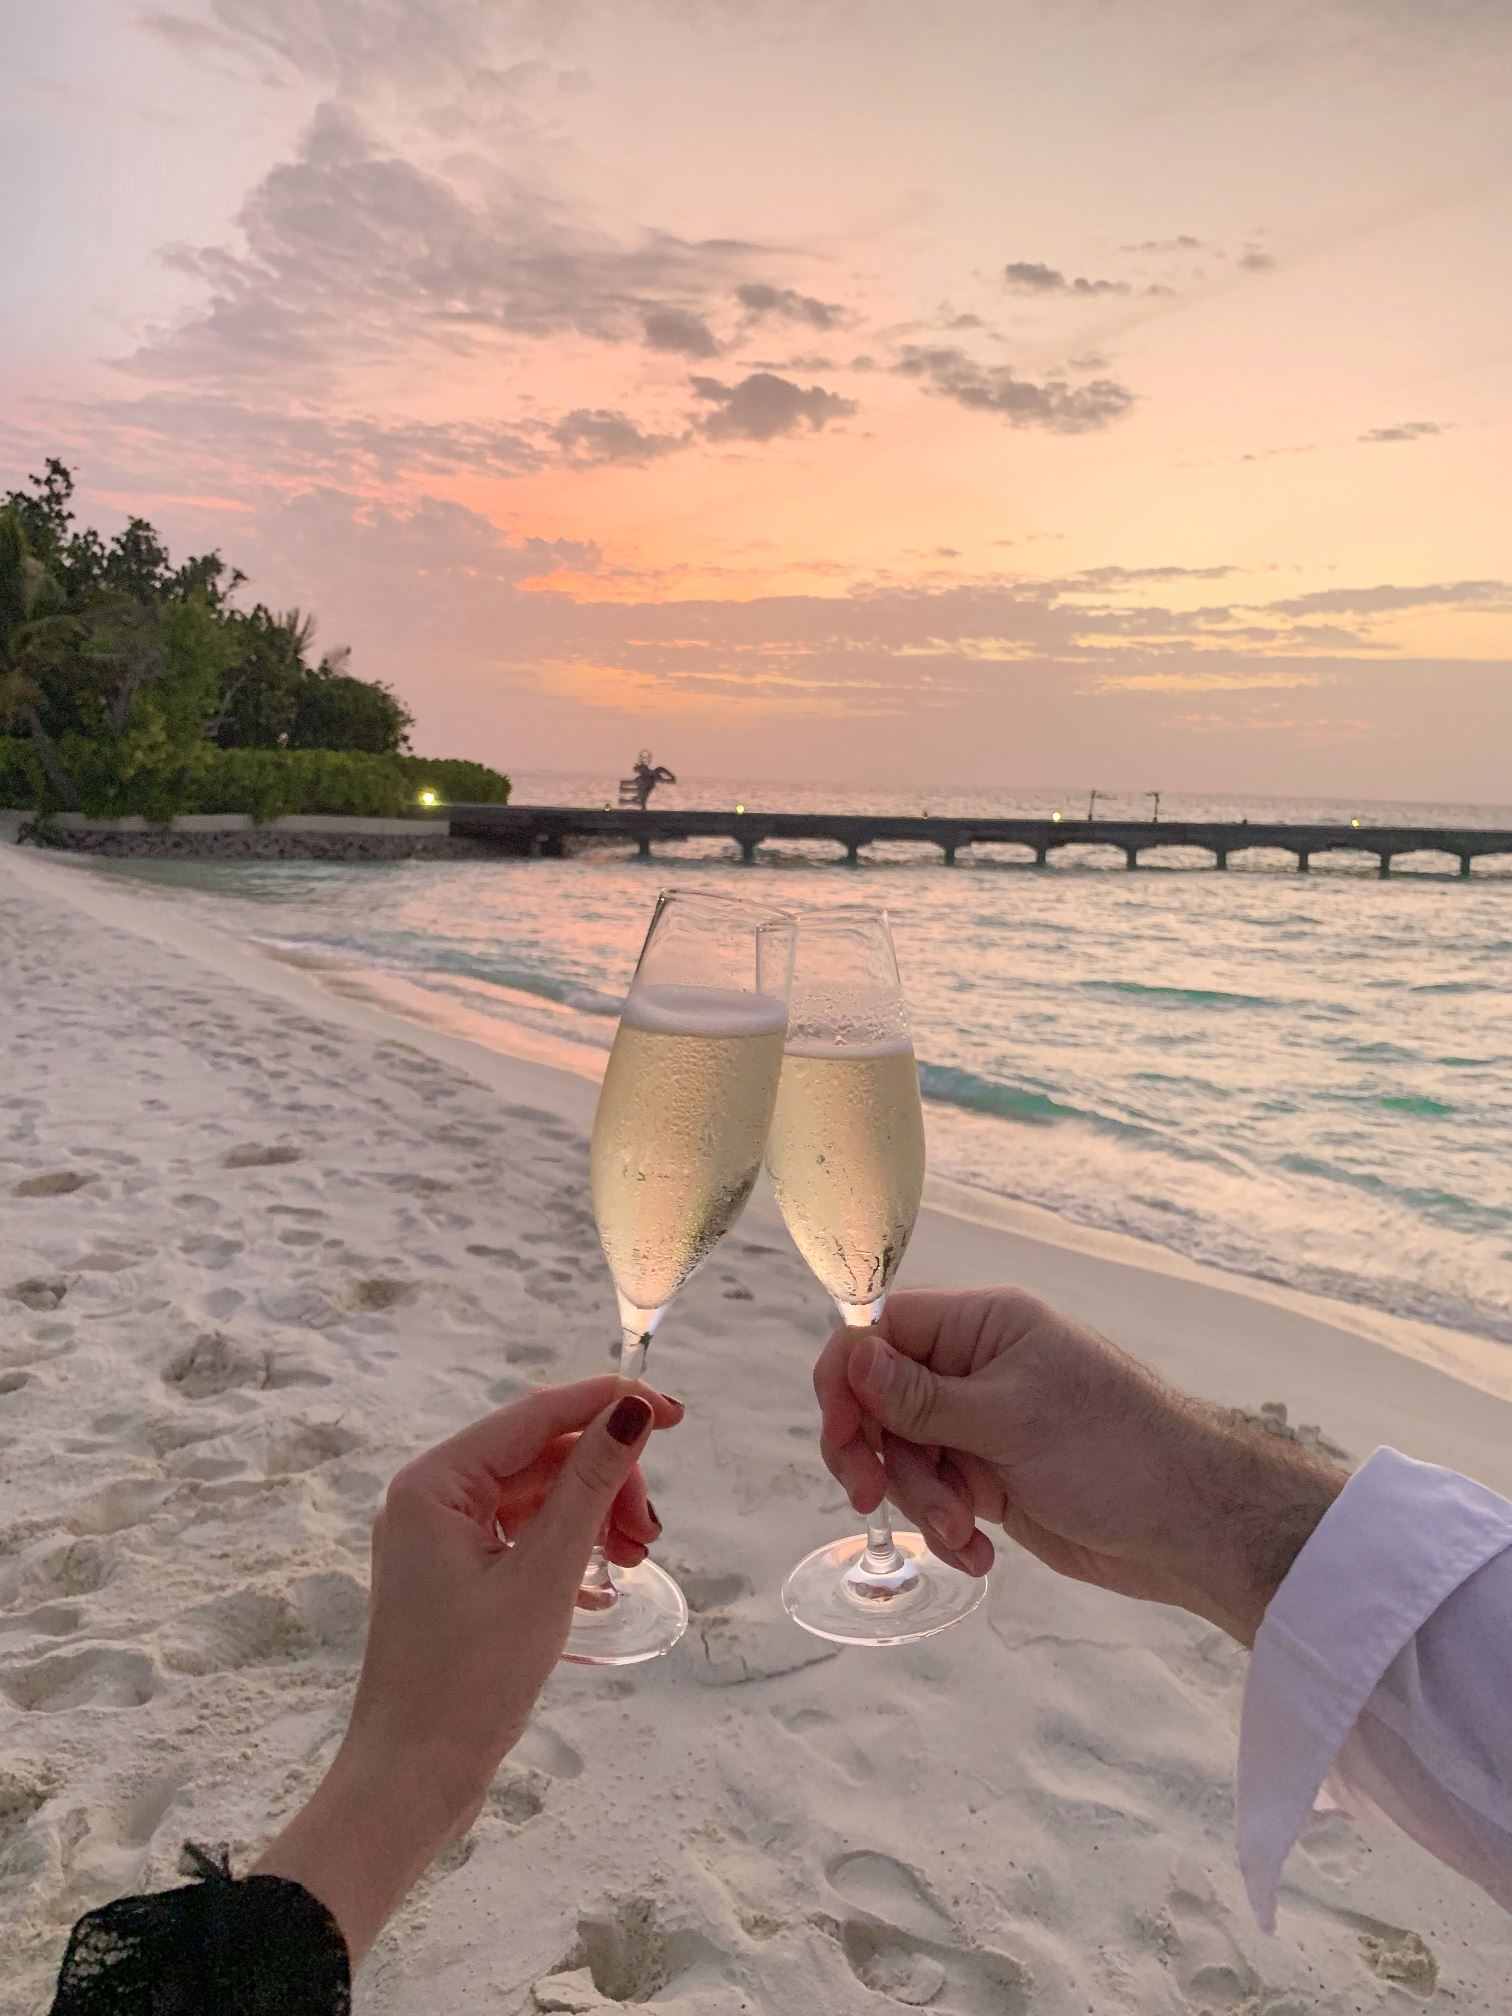 Sunset and champagne at Constance Moofushi @abakumovanastia